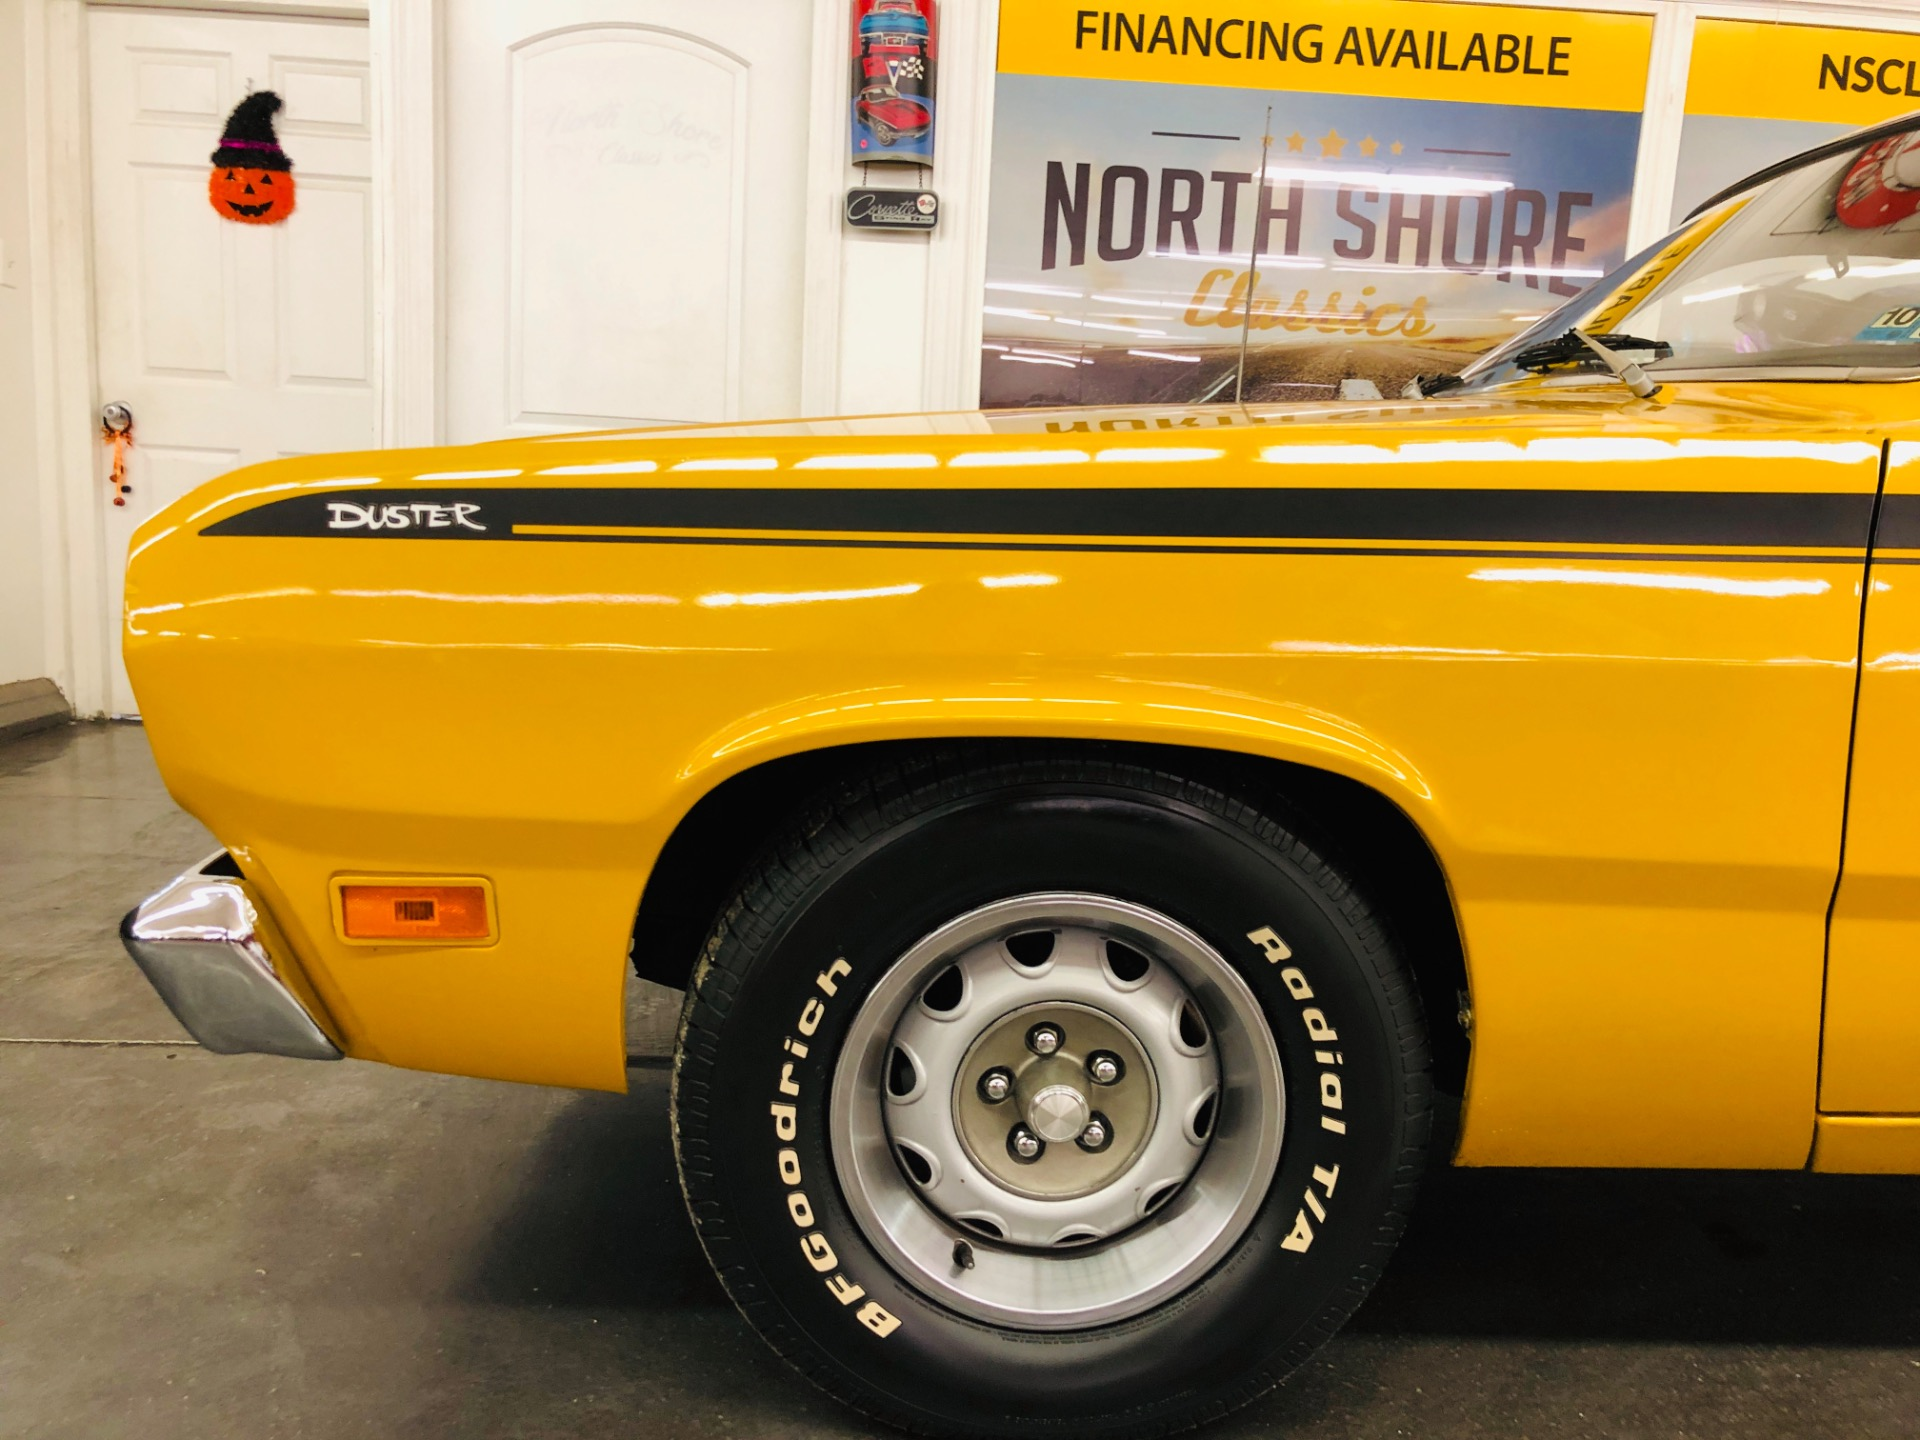 Used 1971 Plymouth Duster - 340 ENGINE - 4 SPEED MANUAL - SUPER CLEAN BODY - SEE VIDEO | Mundelein, IL